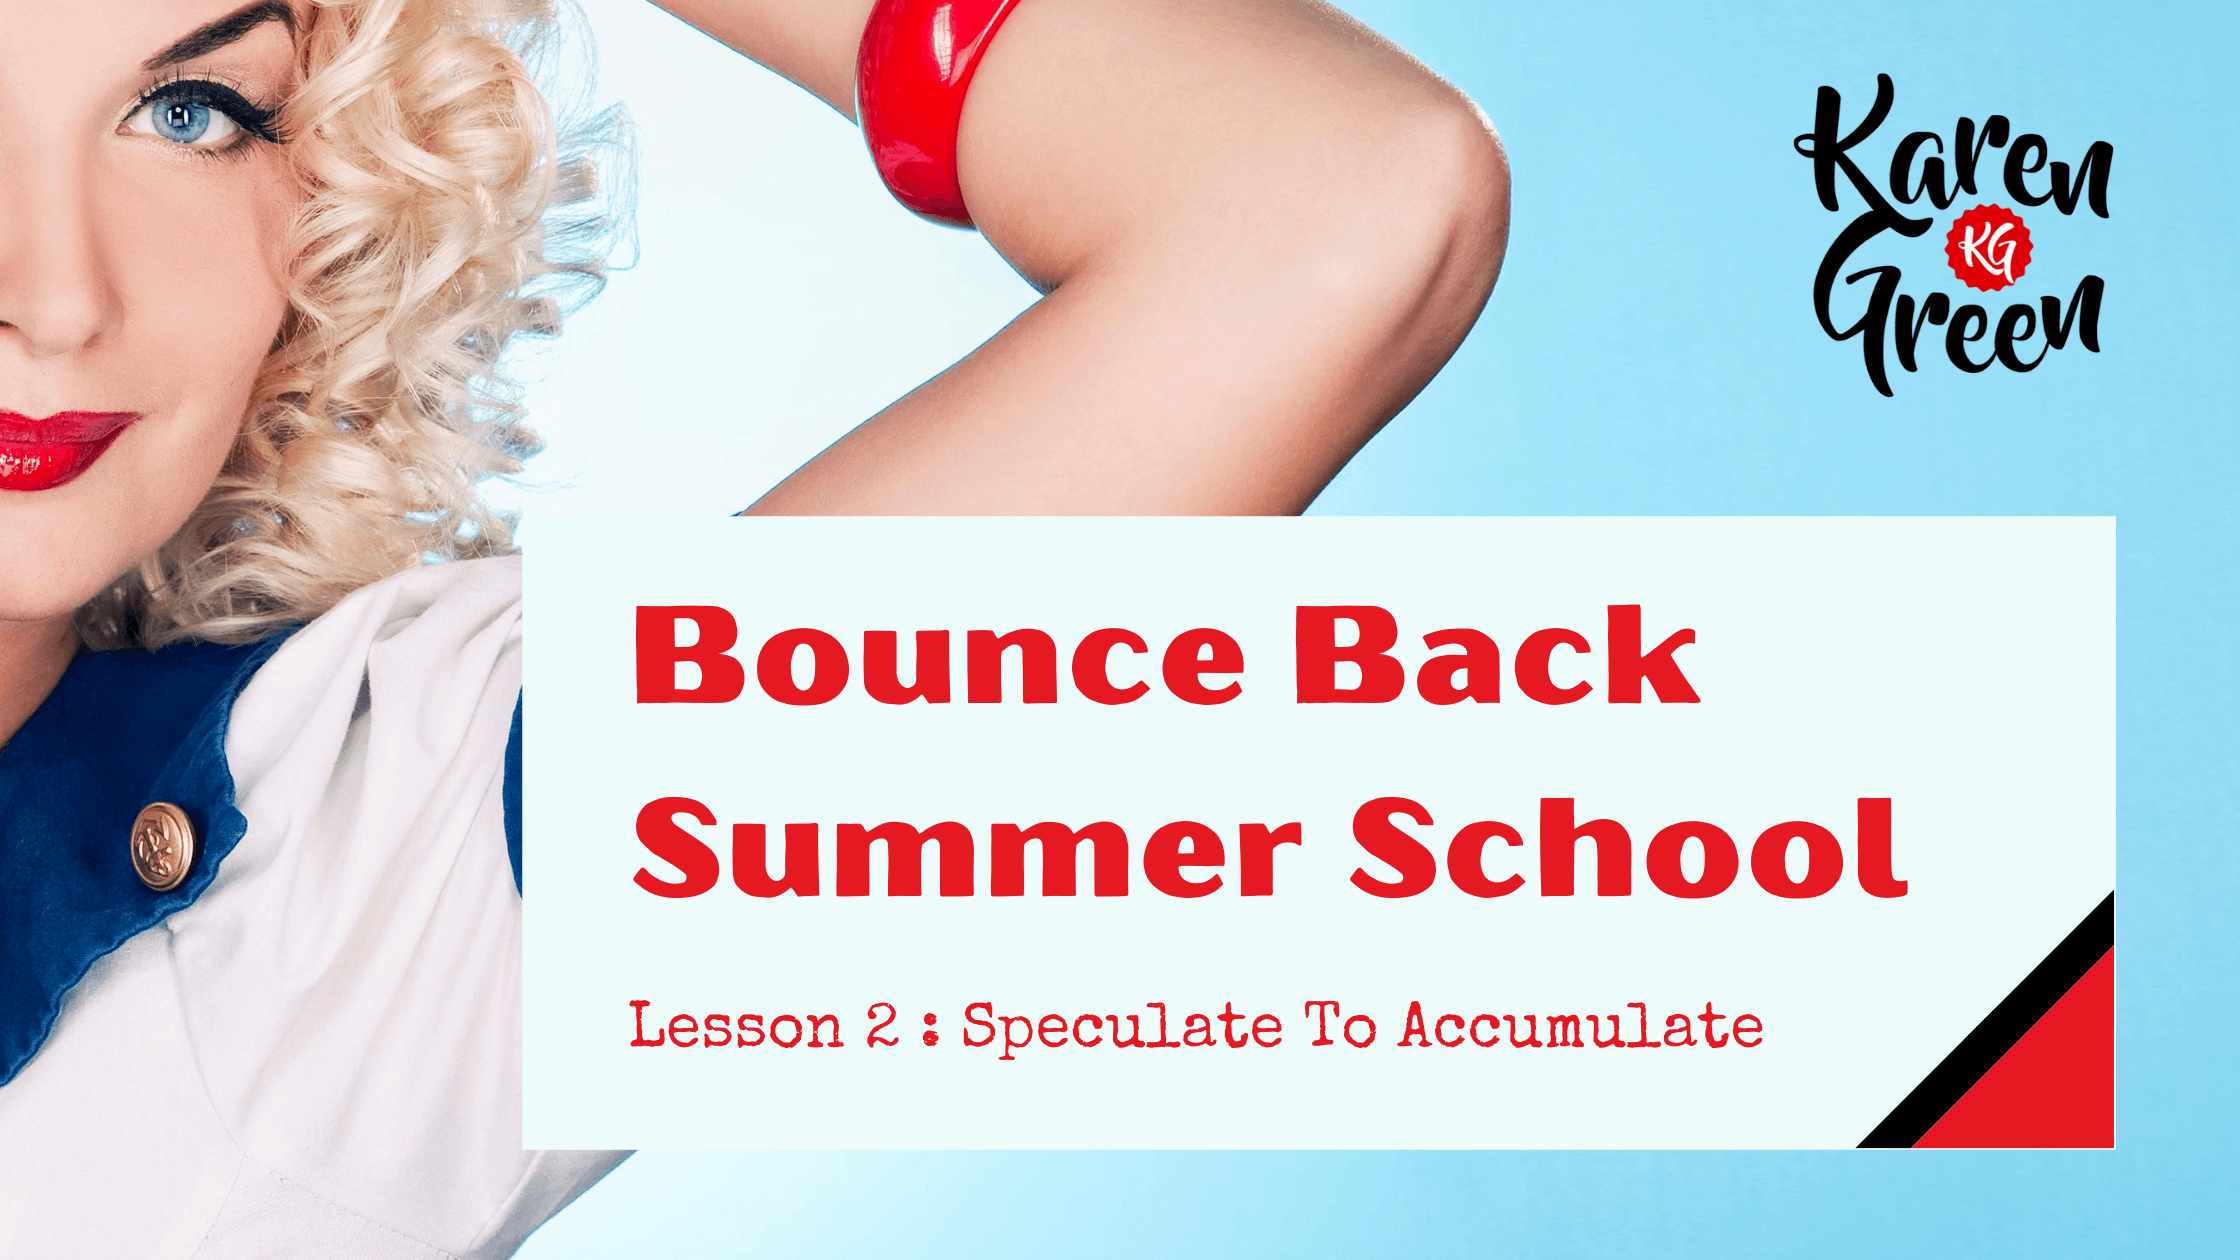 Bounce Back Summer School